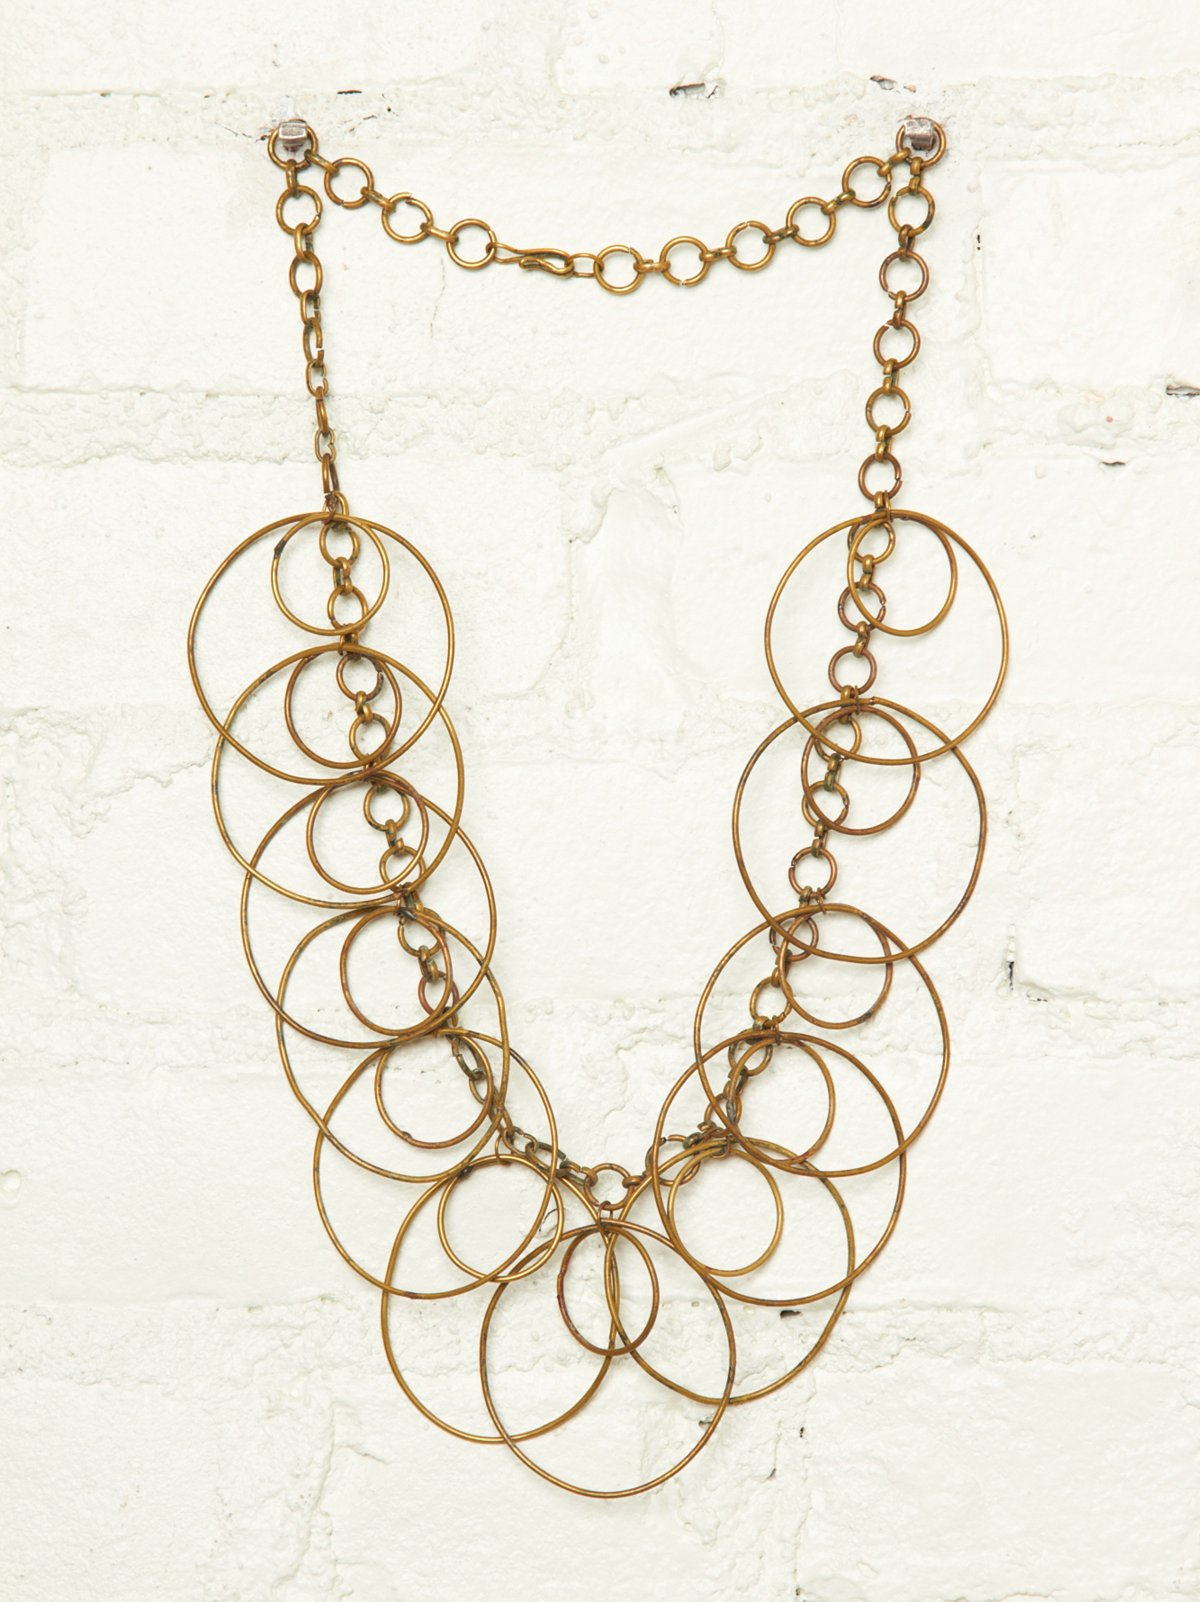 Vintage Hoop Chain Necklace